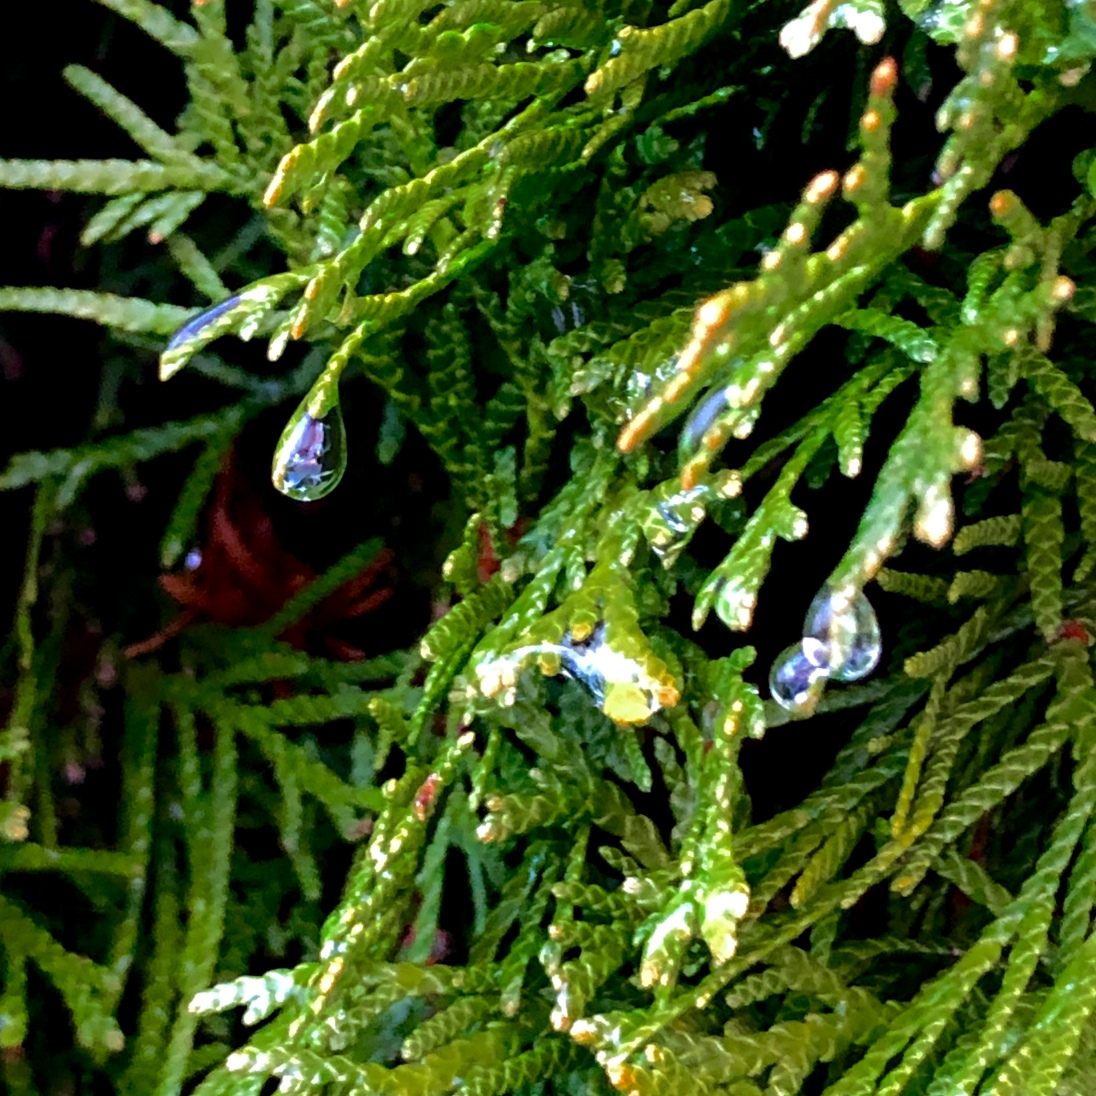 Raindrops dripping off a luscious green fern.